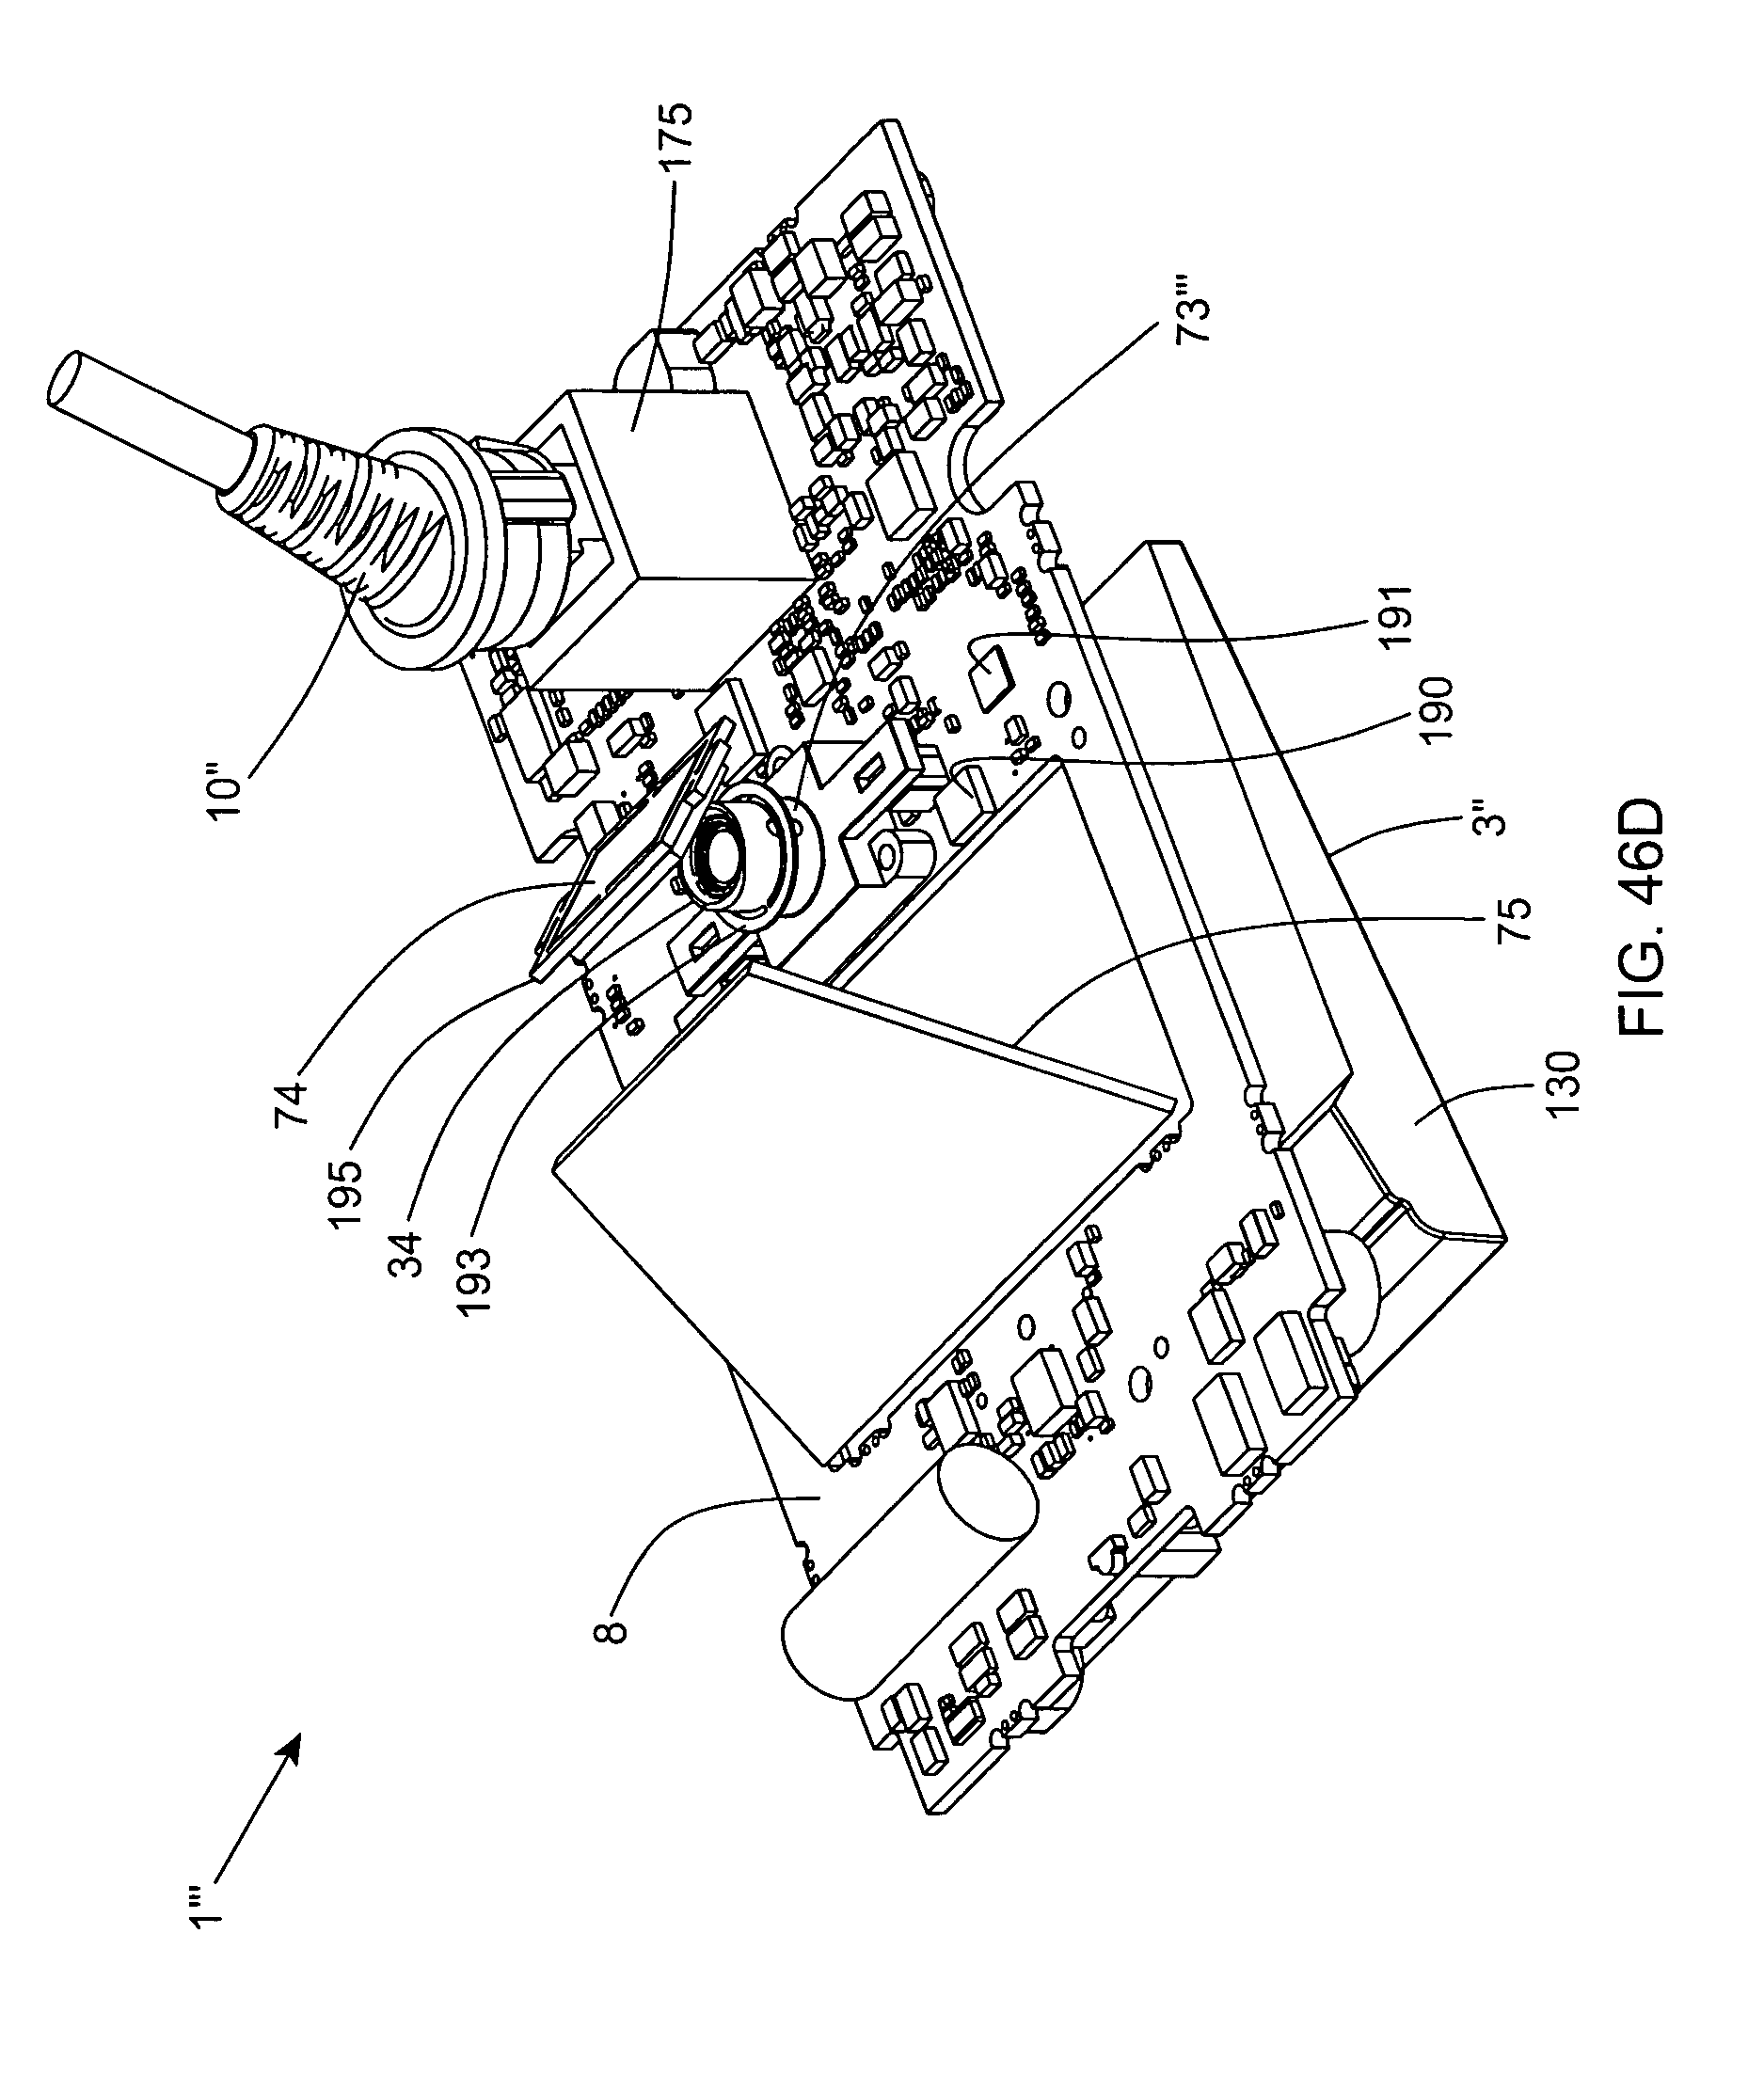 patent us 7 922 089 b2 125 HP Force Motor patent images